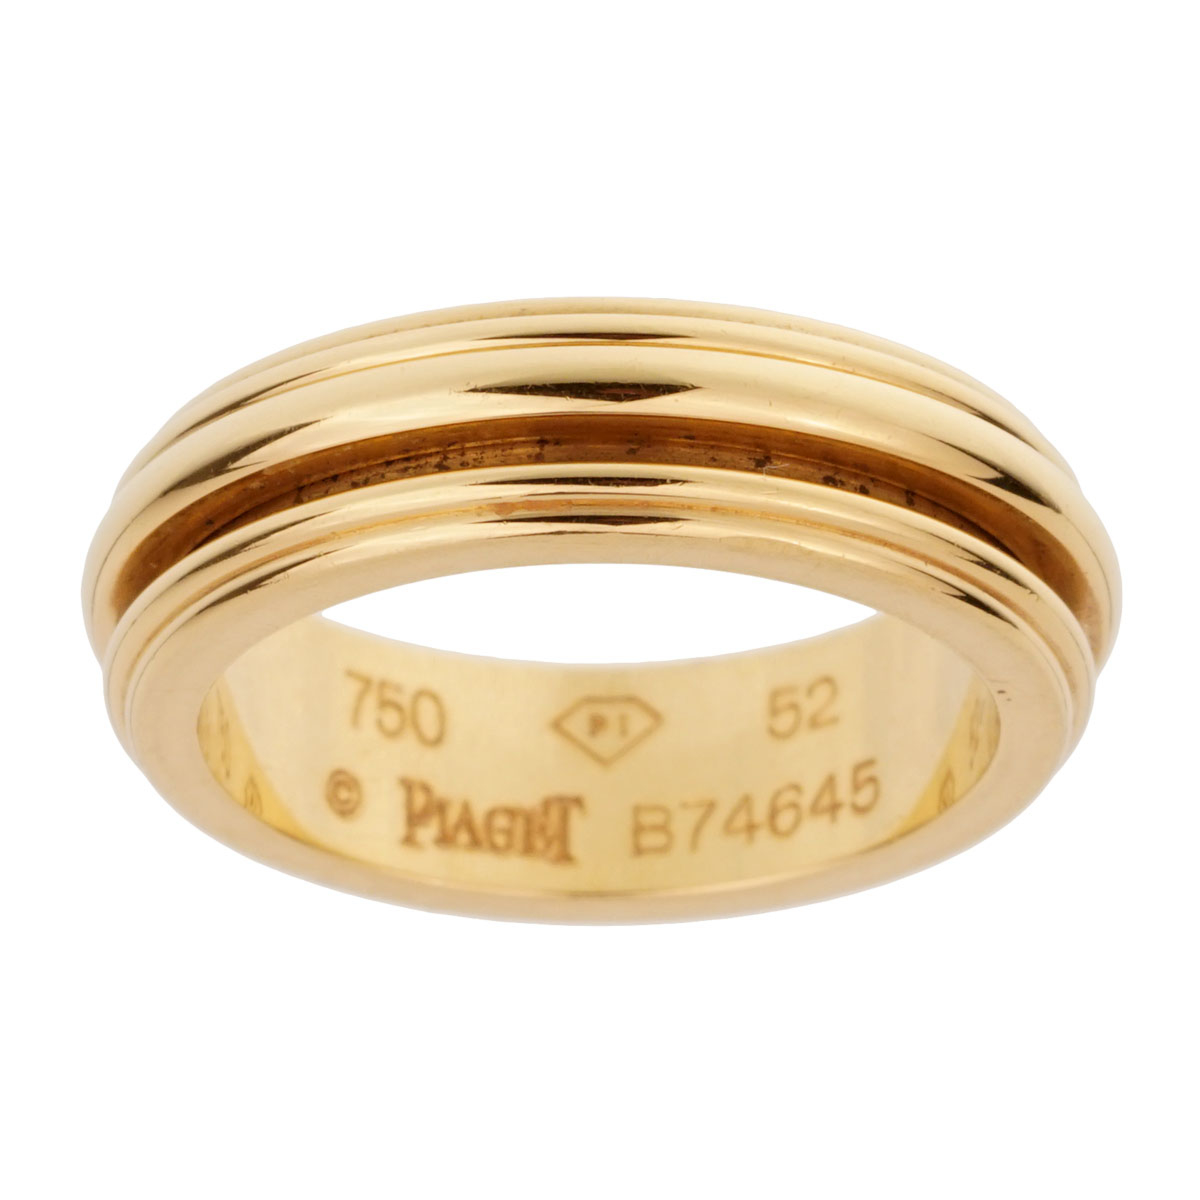 Piaget Possession Yellow Gold Spinning Ring Sz 6 - Piaget Jewelry